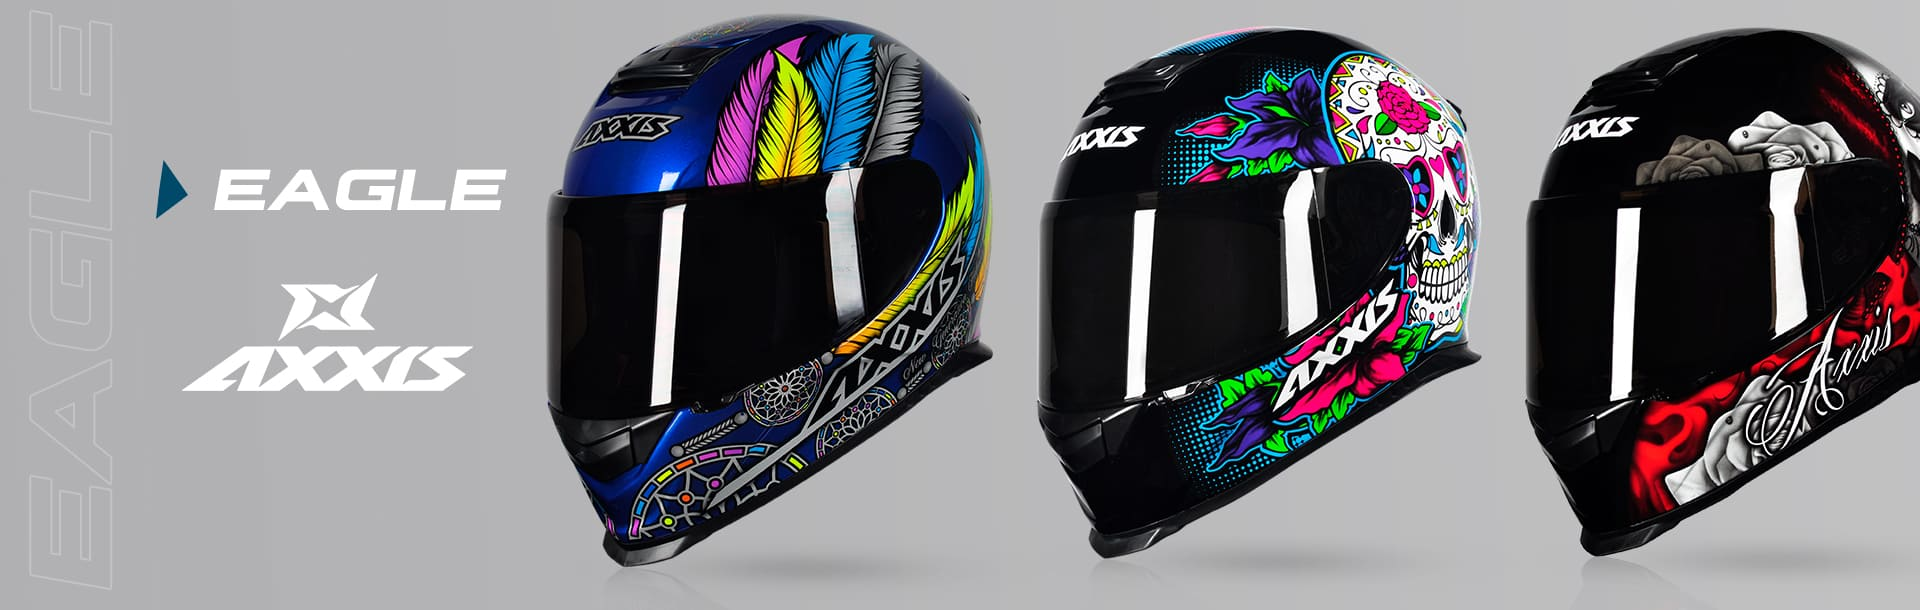 axxis eagle